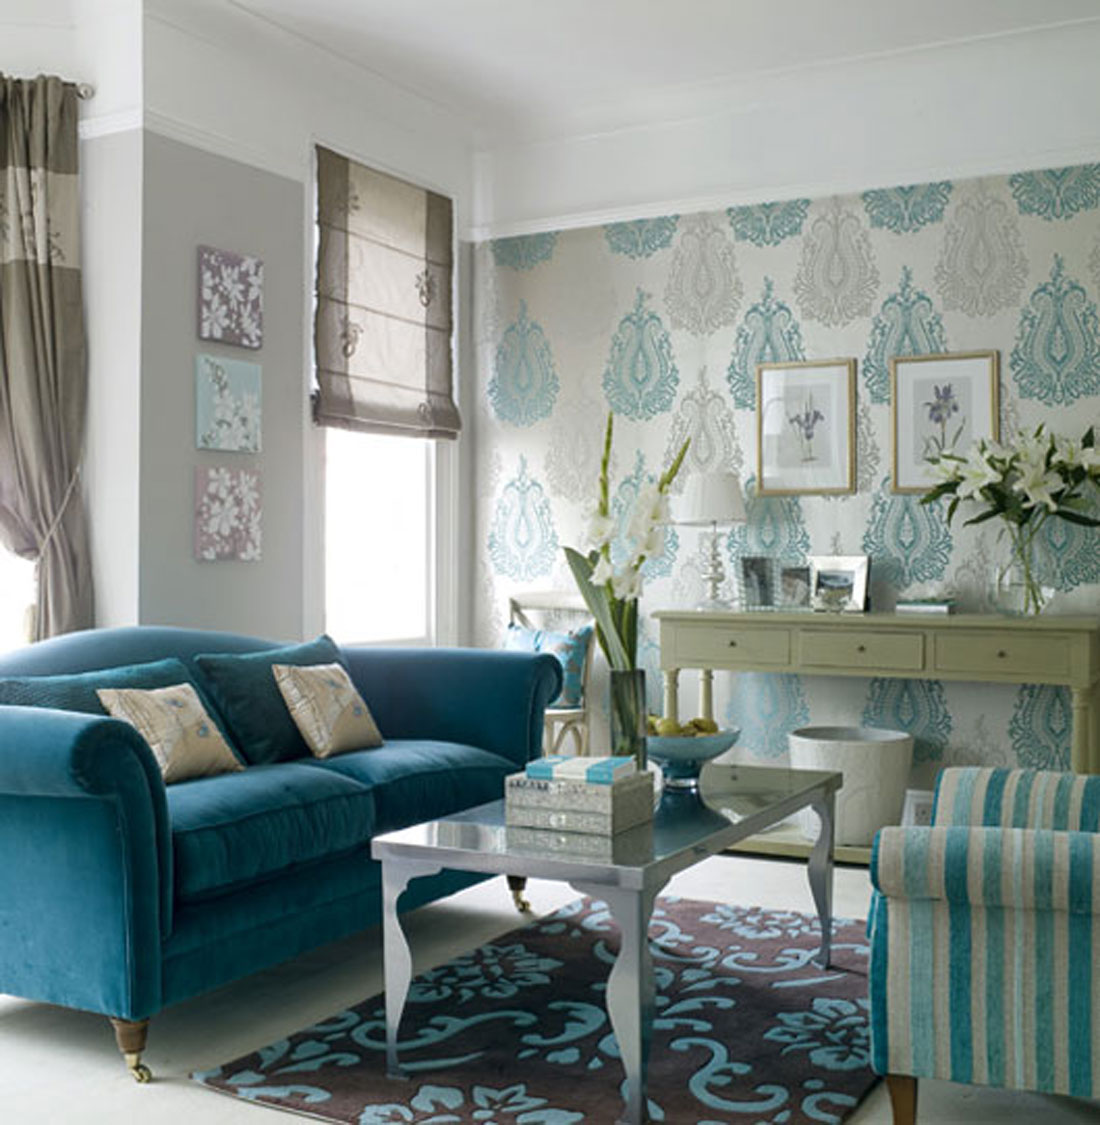 Family Roomdesign Ideas: The Texture Of Teal And Turquoise A Bold And Beautiful